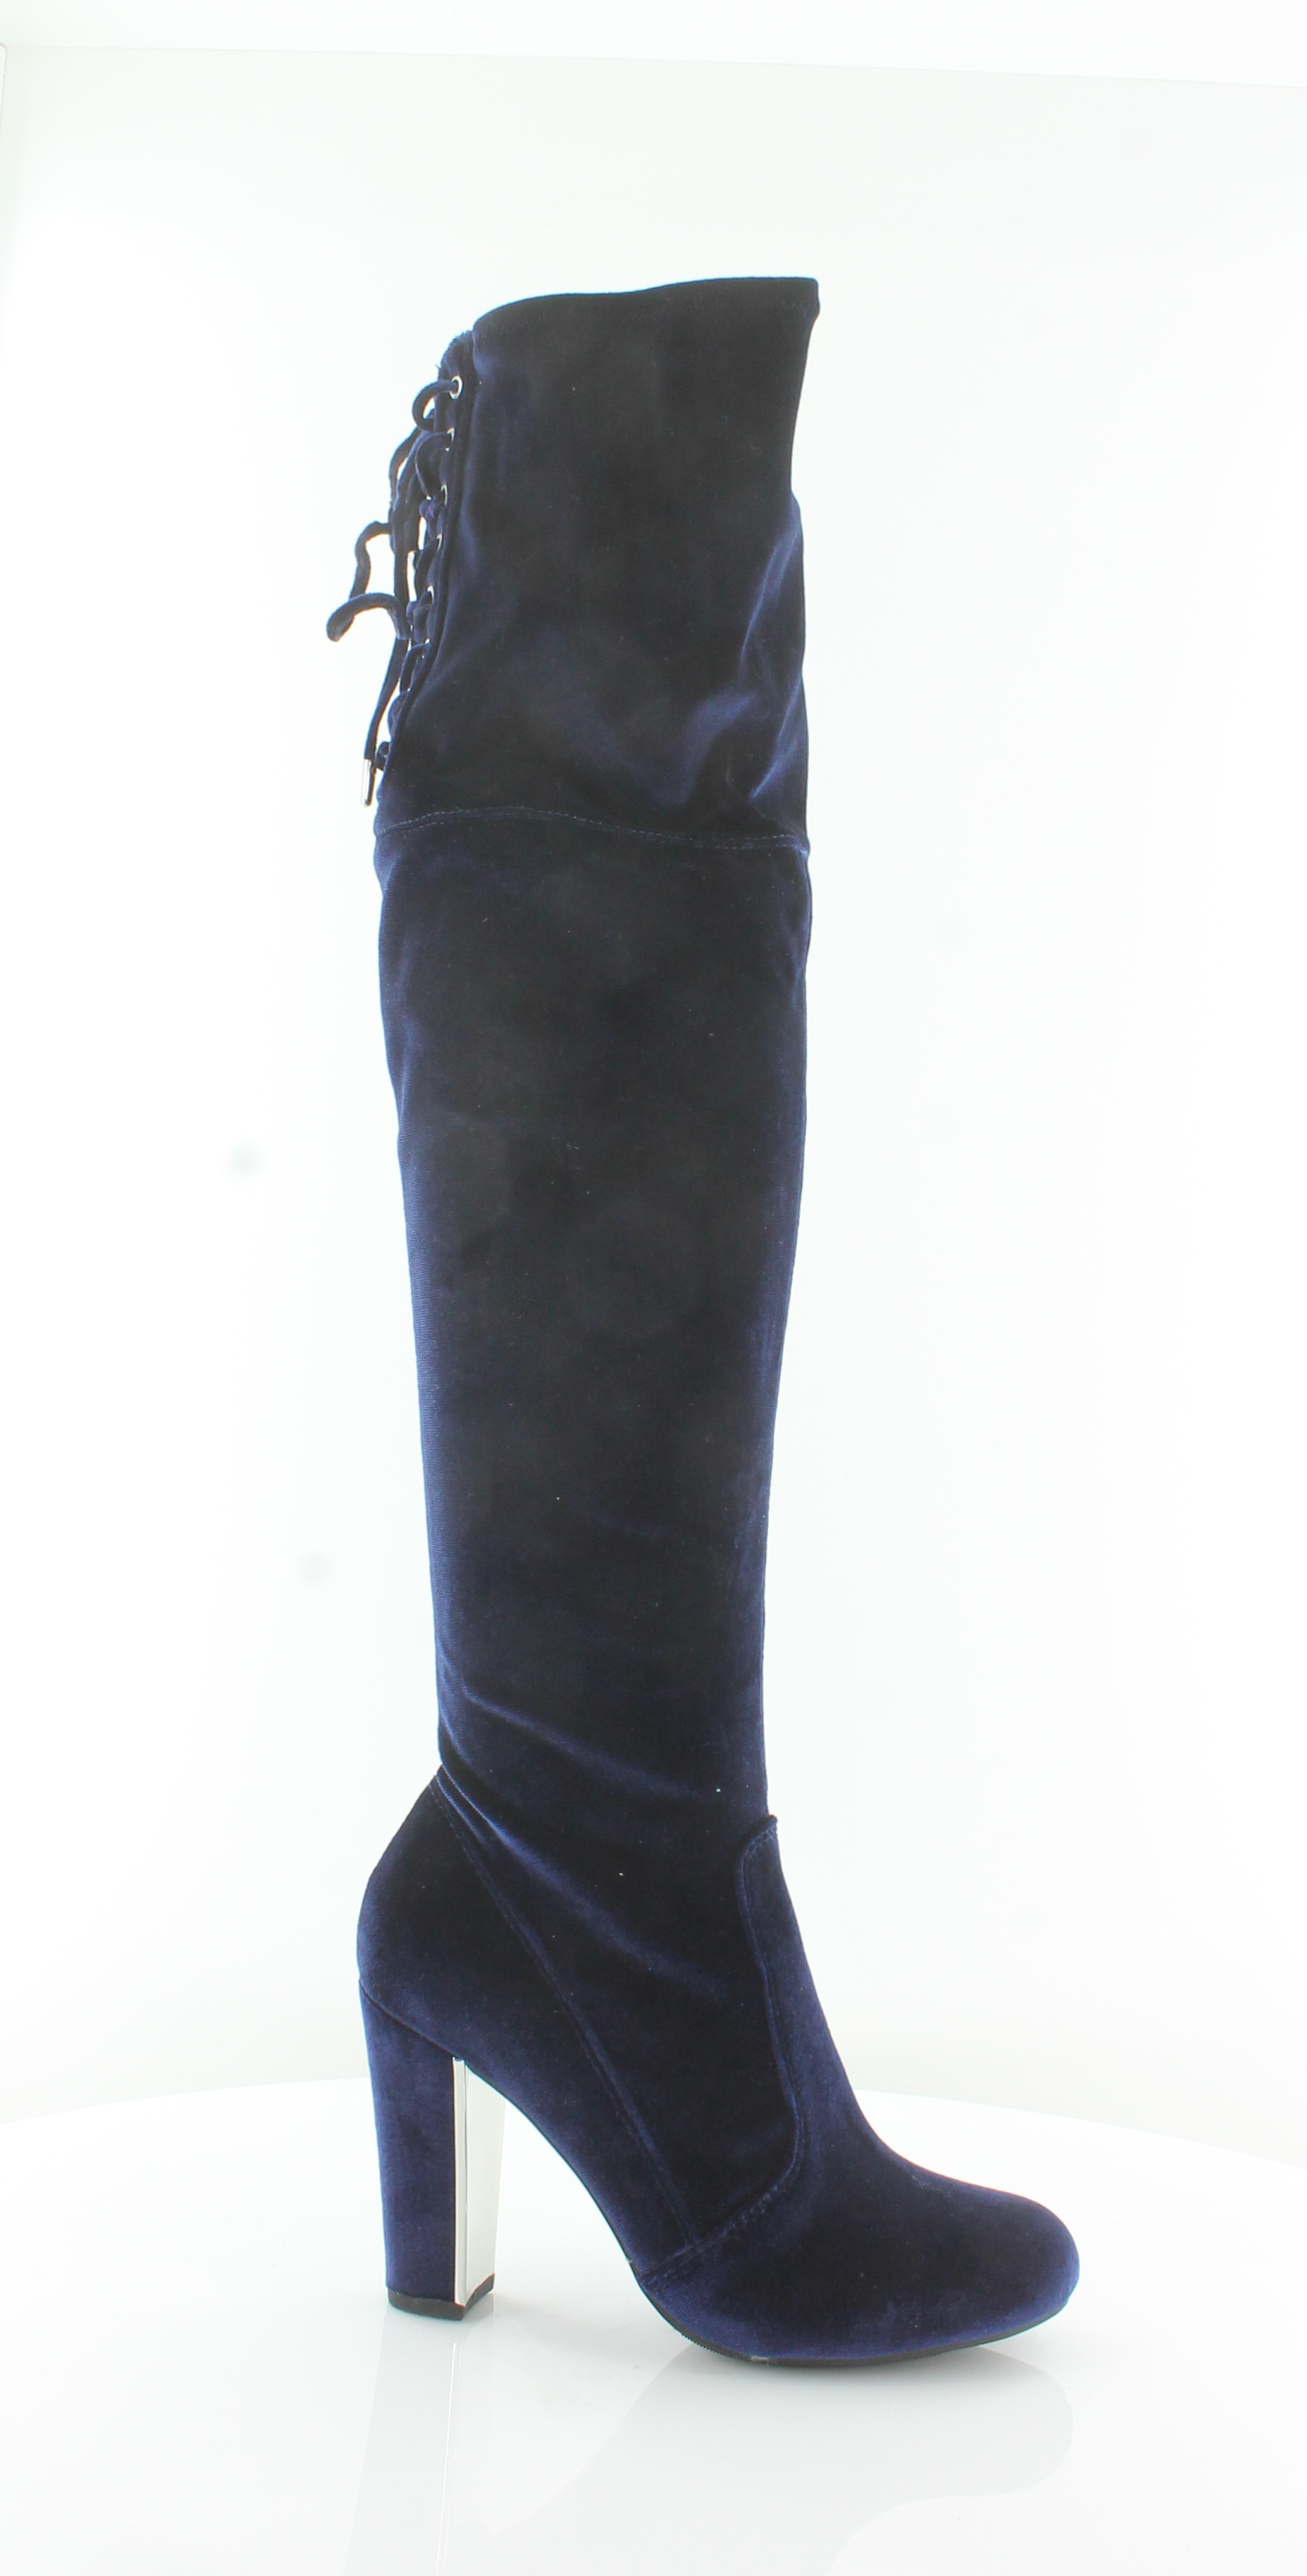 Matterial Girl New Priyanka bluee Womens shoes Size 6.5 M Boots MSRP